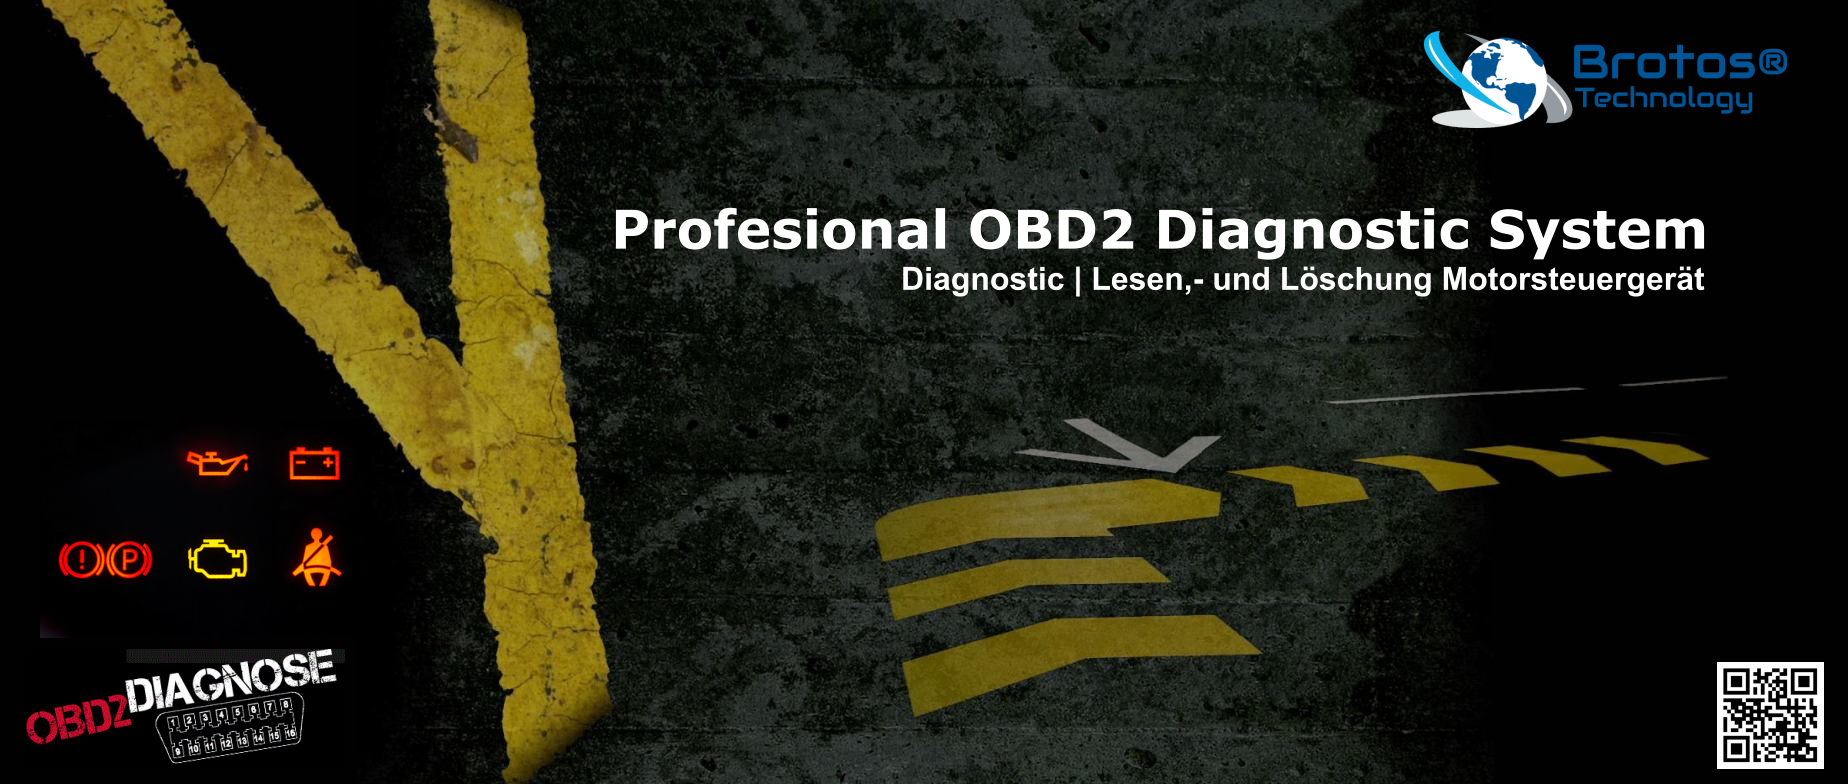 Hintergrund-W-Tec-Systems-Diagnose-Technik-OBD2Brotos